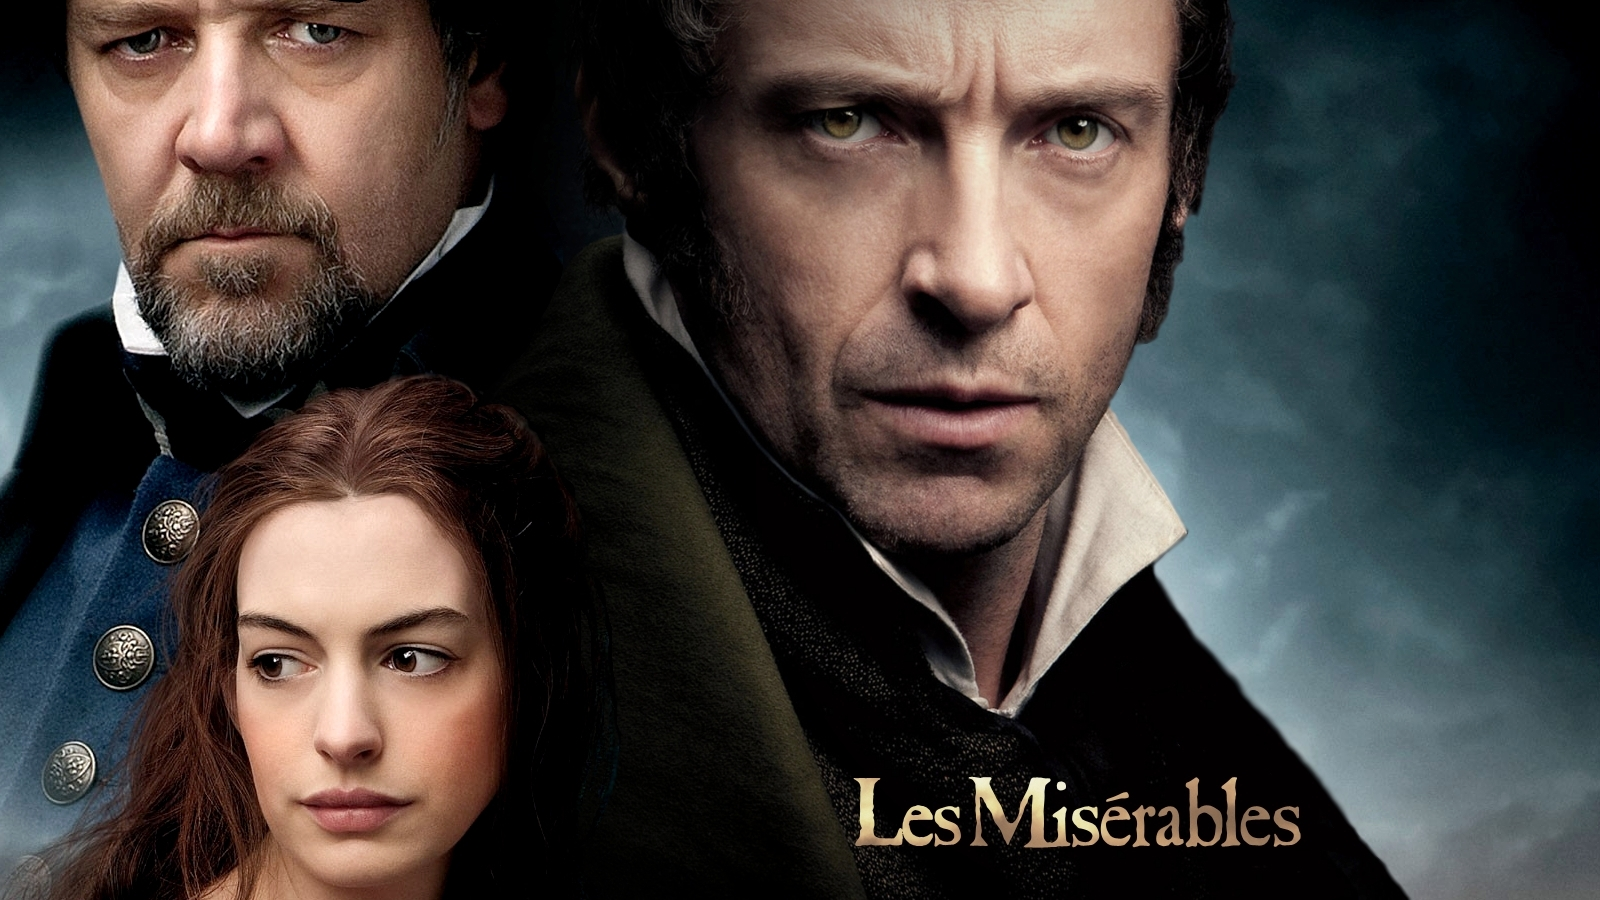 http://3.bp.blogspot.com/-syVK1Y-ExMU/UM96MPUiTjI/AAAAAAAAT_I/ucXF9aL8SP0/s1600/Les_Miserables_Wallpaper_Movie.jpg